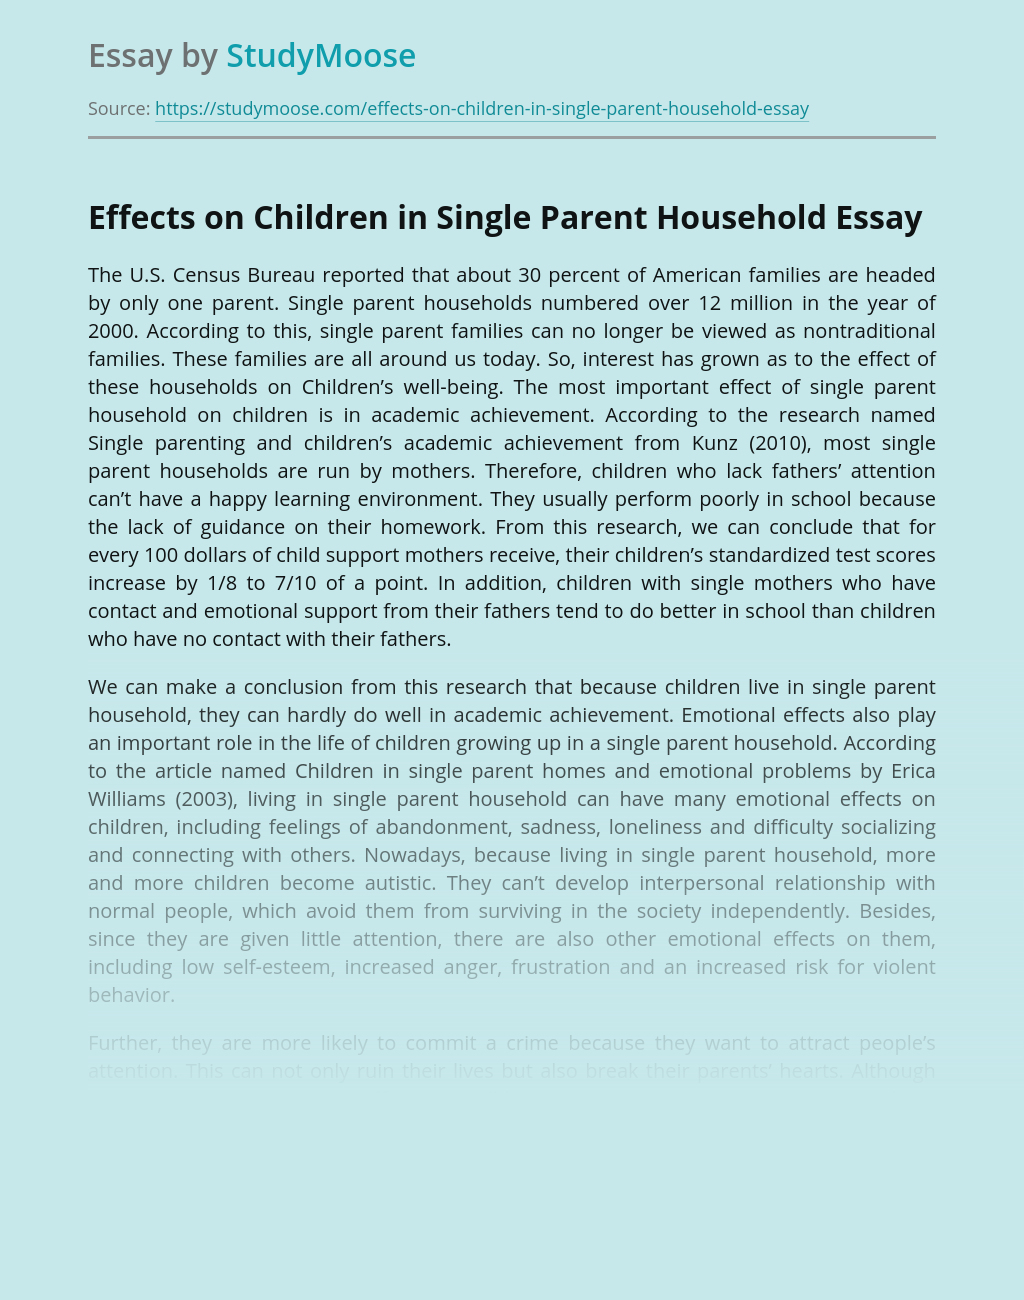 Effects on Children in Single Parent Household